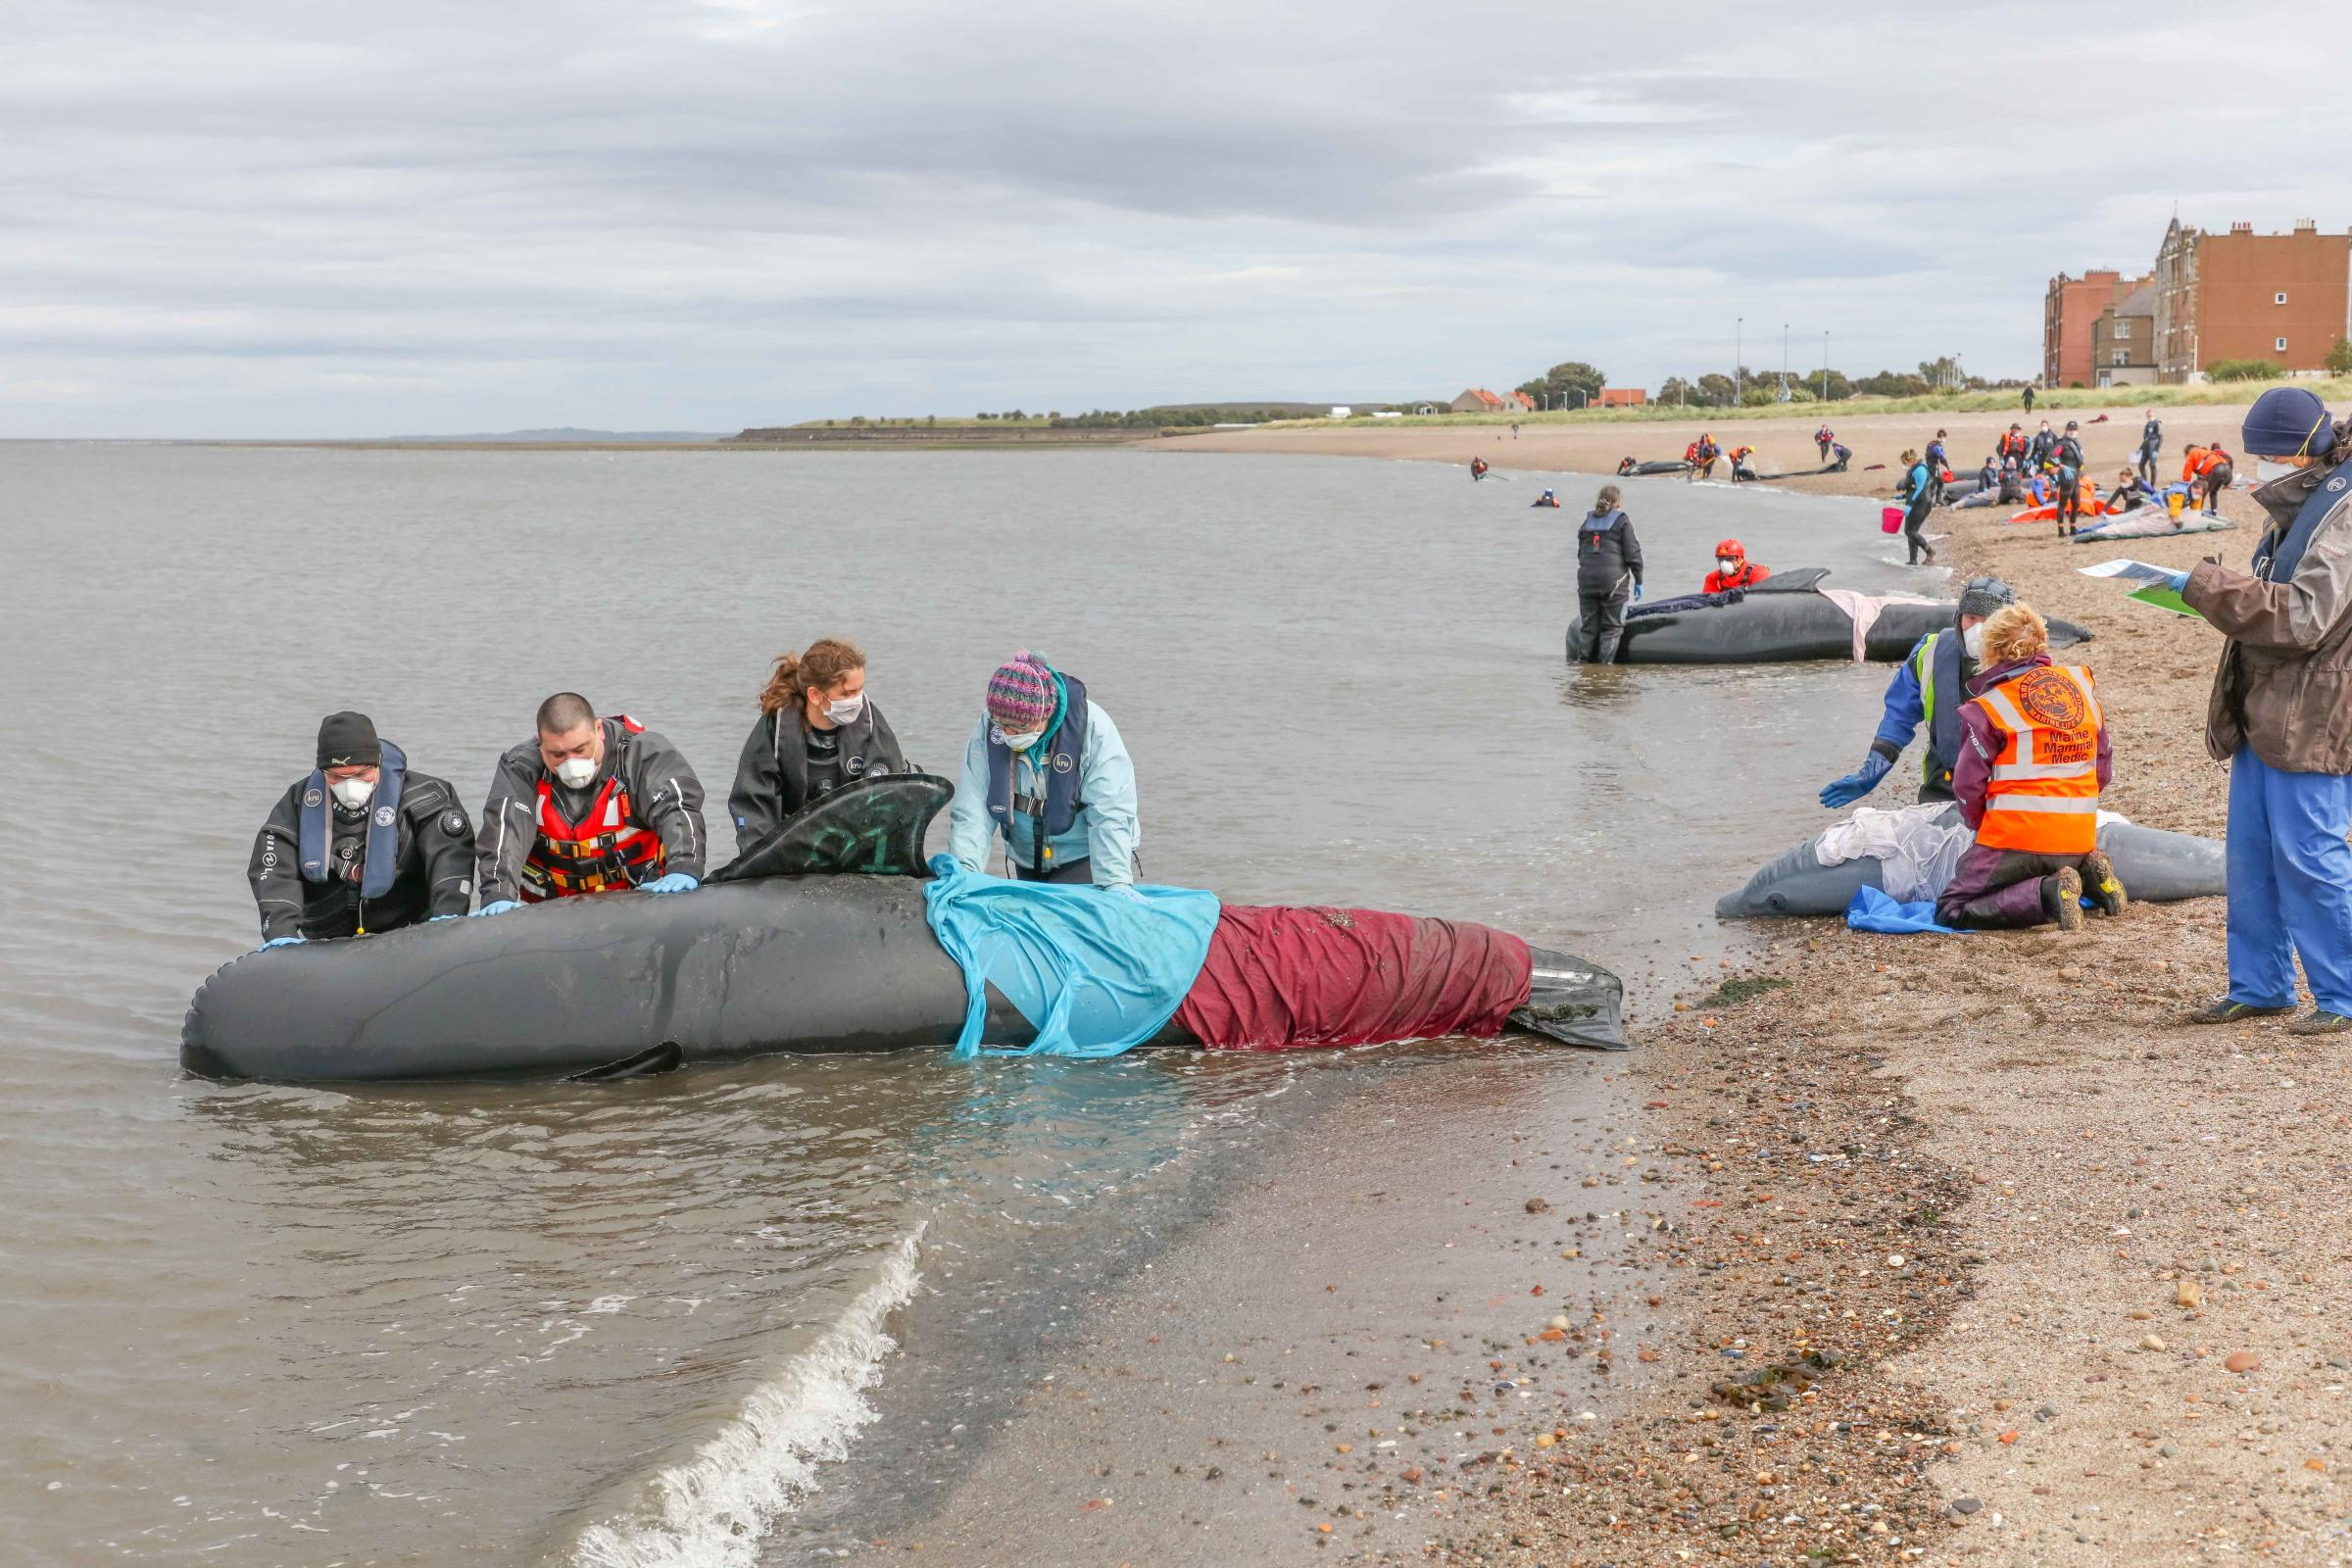 PICTURES: Life-size inflatable whales 'released' at Fisherrow